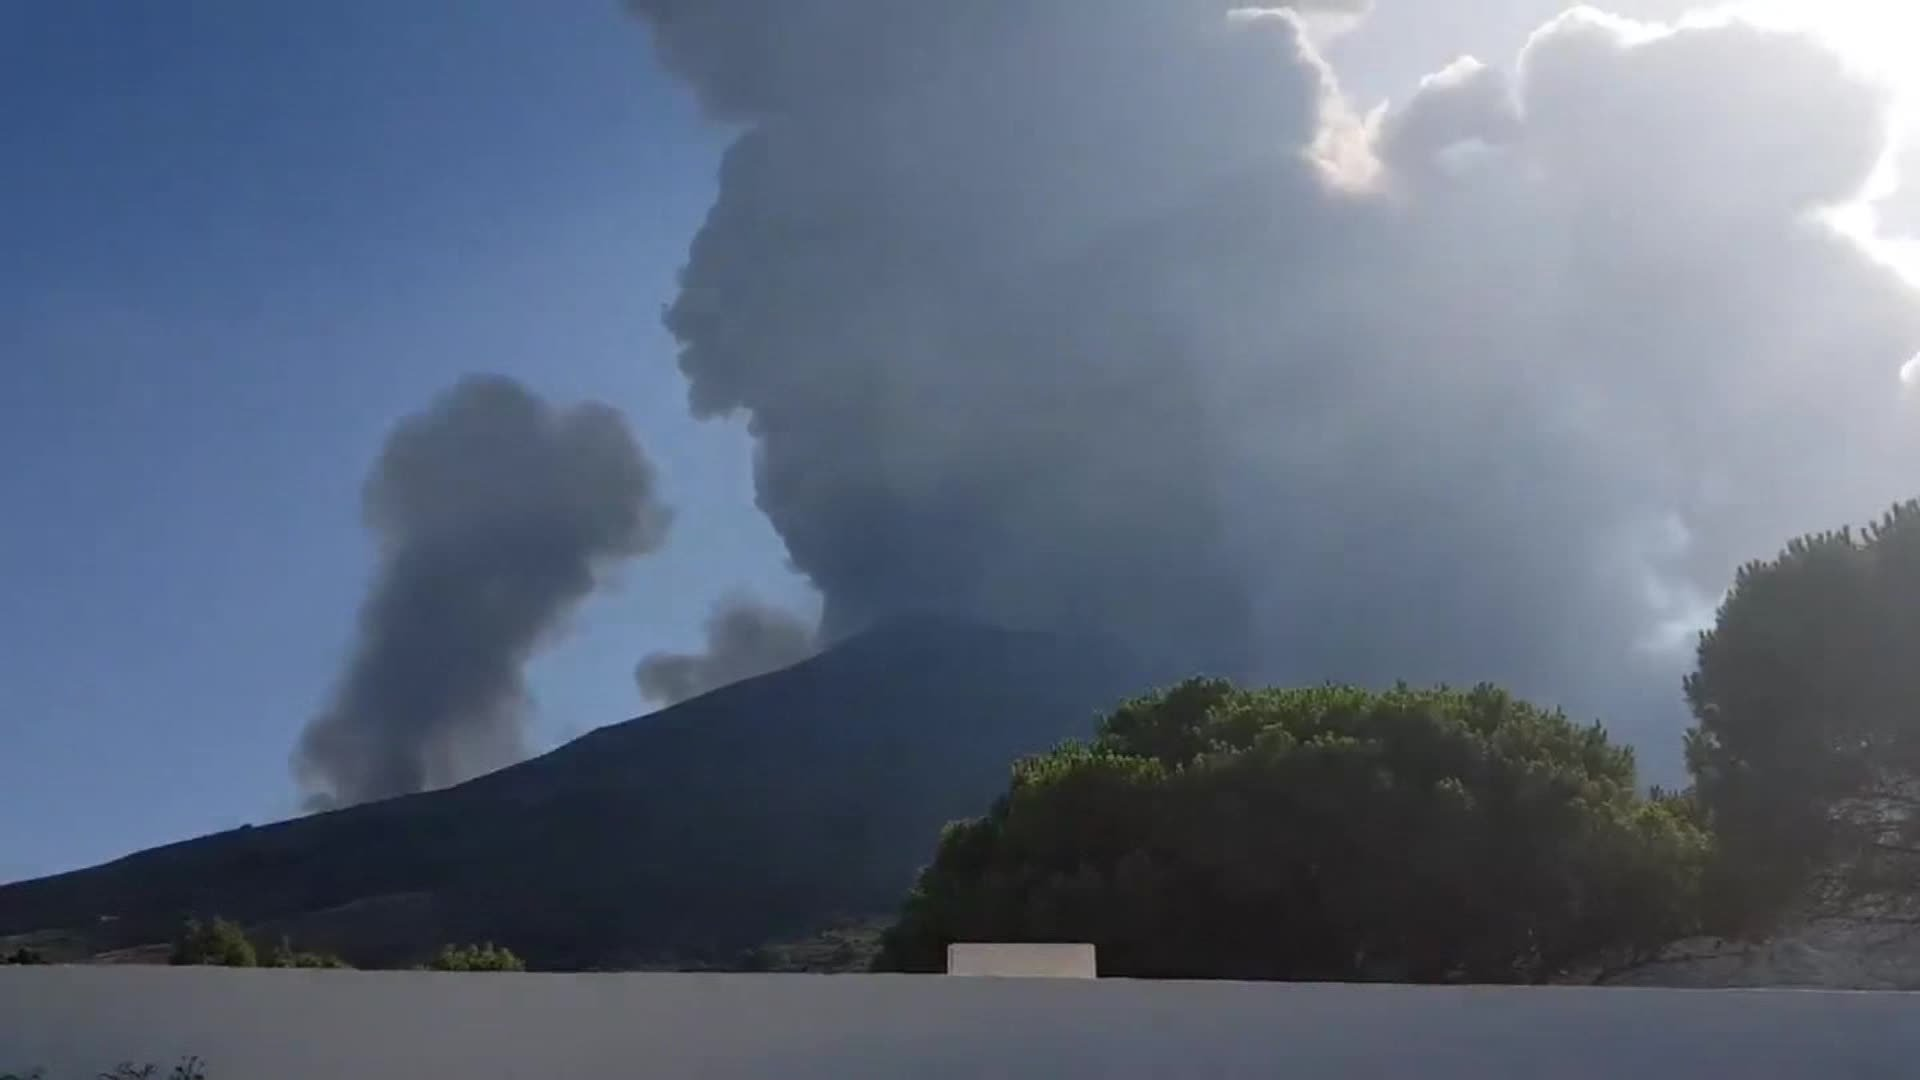 A volcanic eruption occurred on the Italian island of Stromboli on Wednesday afternoon. (Credit: Demi Cerveau)